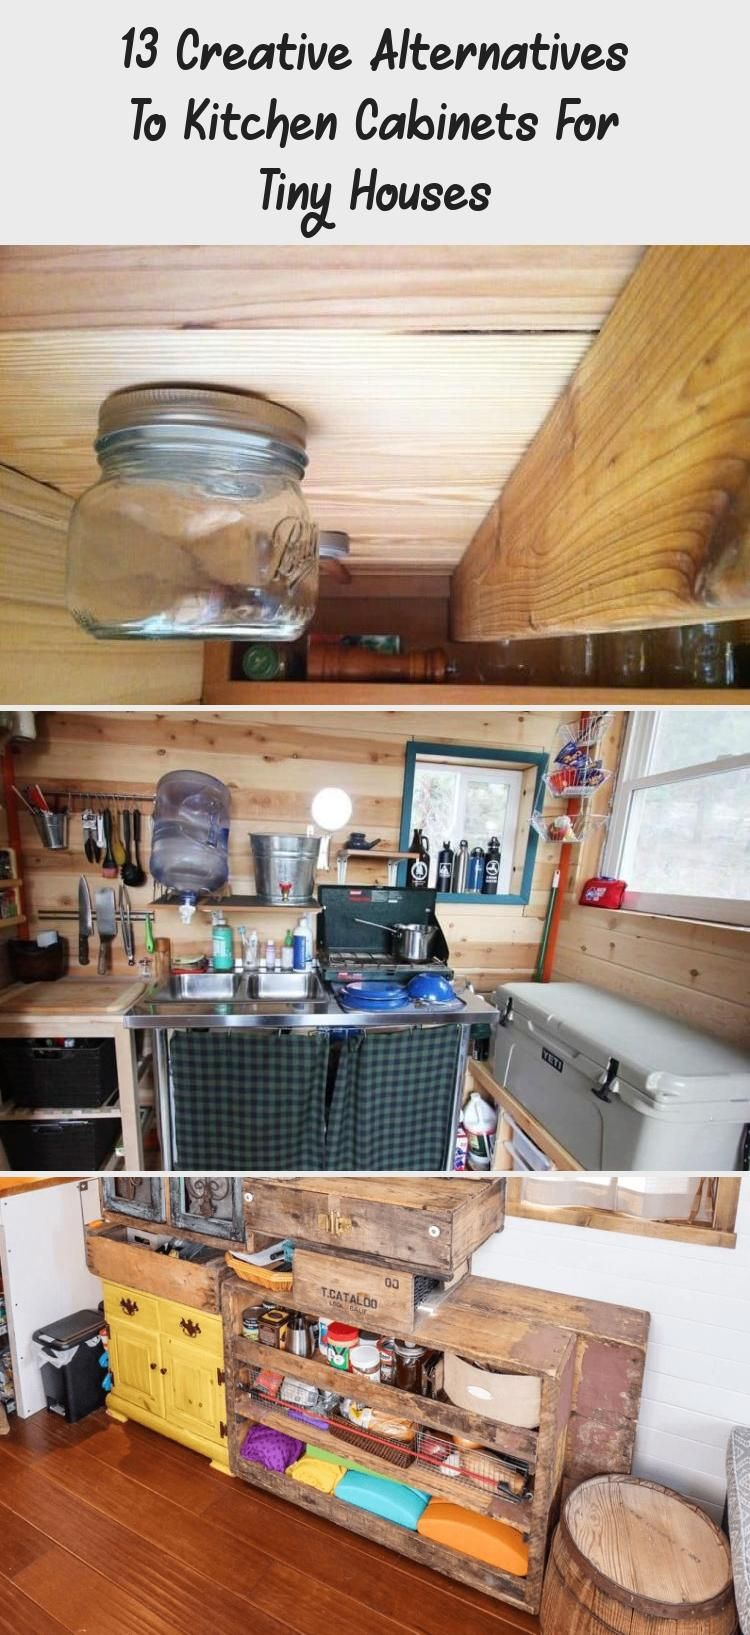 13 Creative Alternatives To Kitchen Cabinets For Tiny Houses In 2020 With Images Kitchen Cupboard Designs Cabinet Kitchen Cabinets